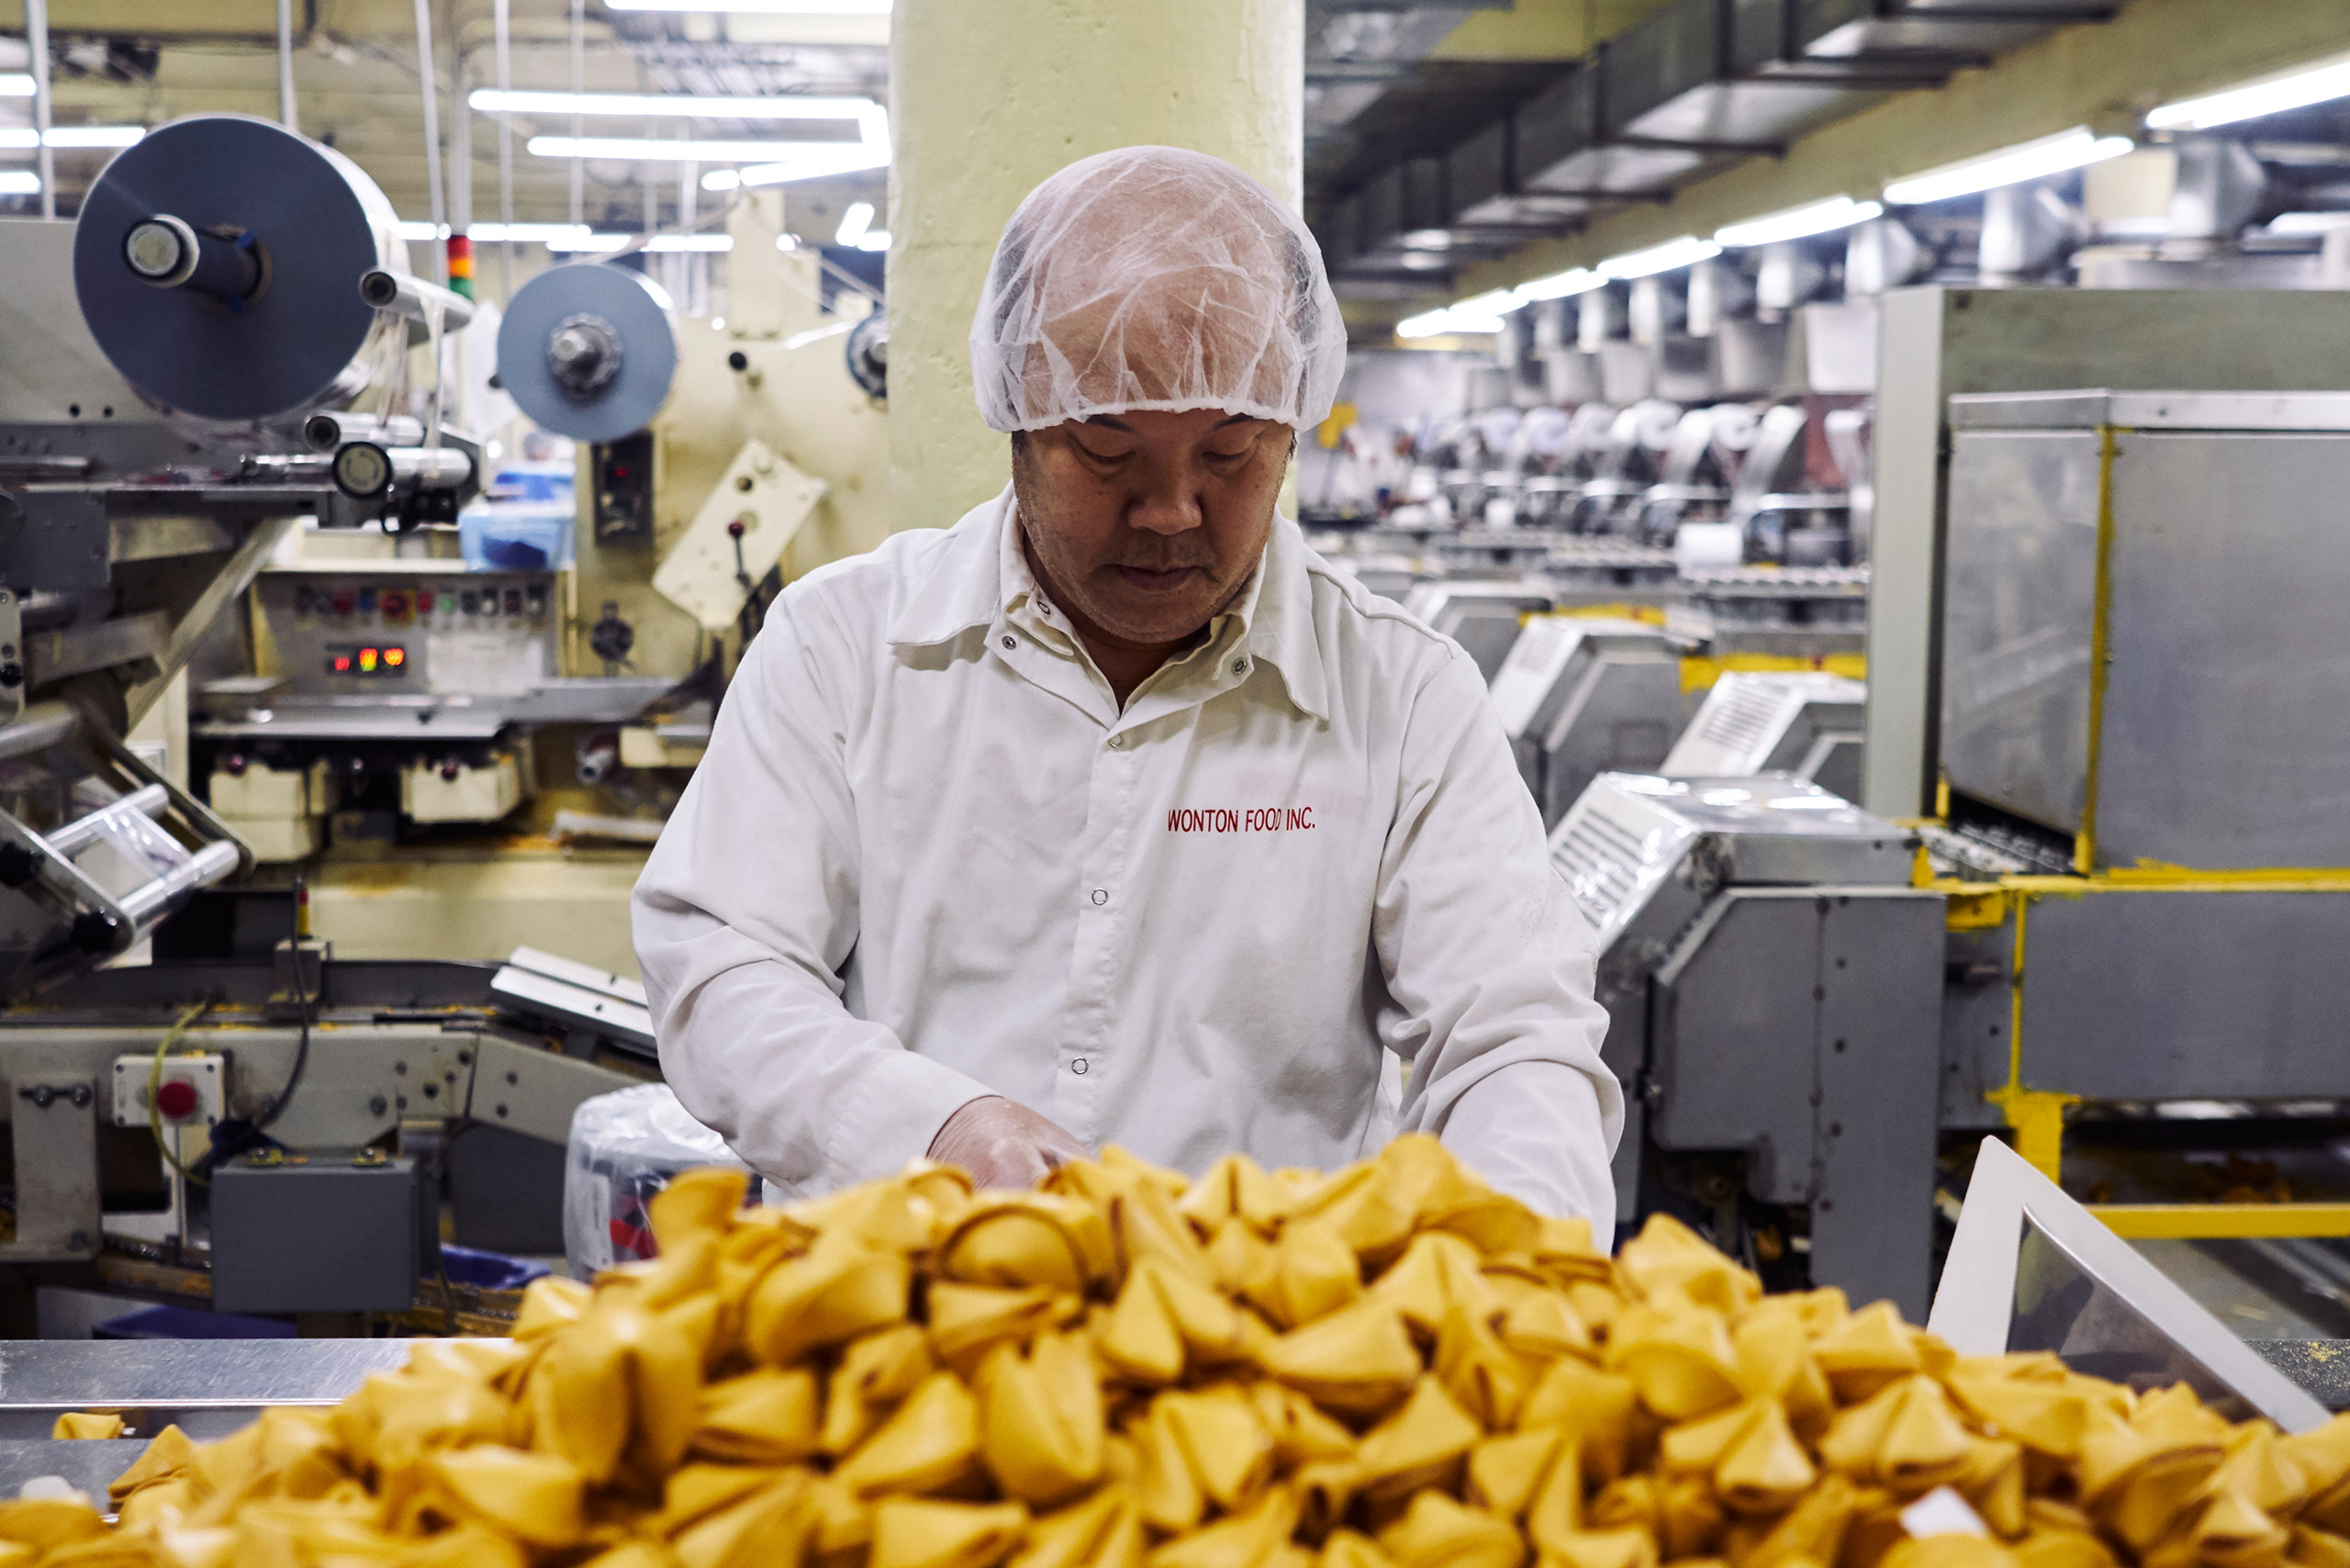 Inside the fortune cookie manufacturing plant Inside the fortune cookie manufacturing plant of Wonton Food Inc. Queens, N.Y. Jan. 18, 2017.